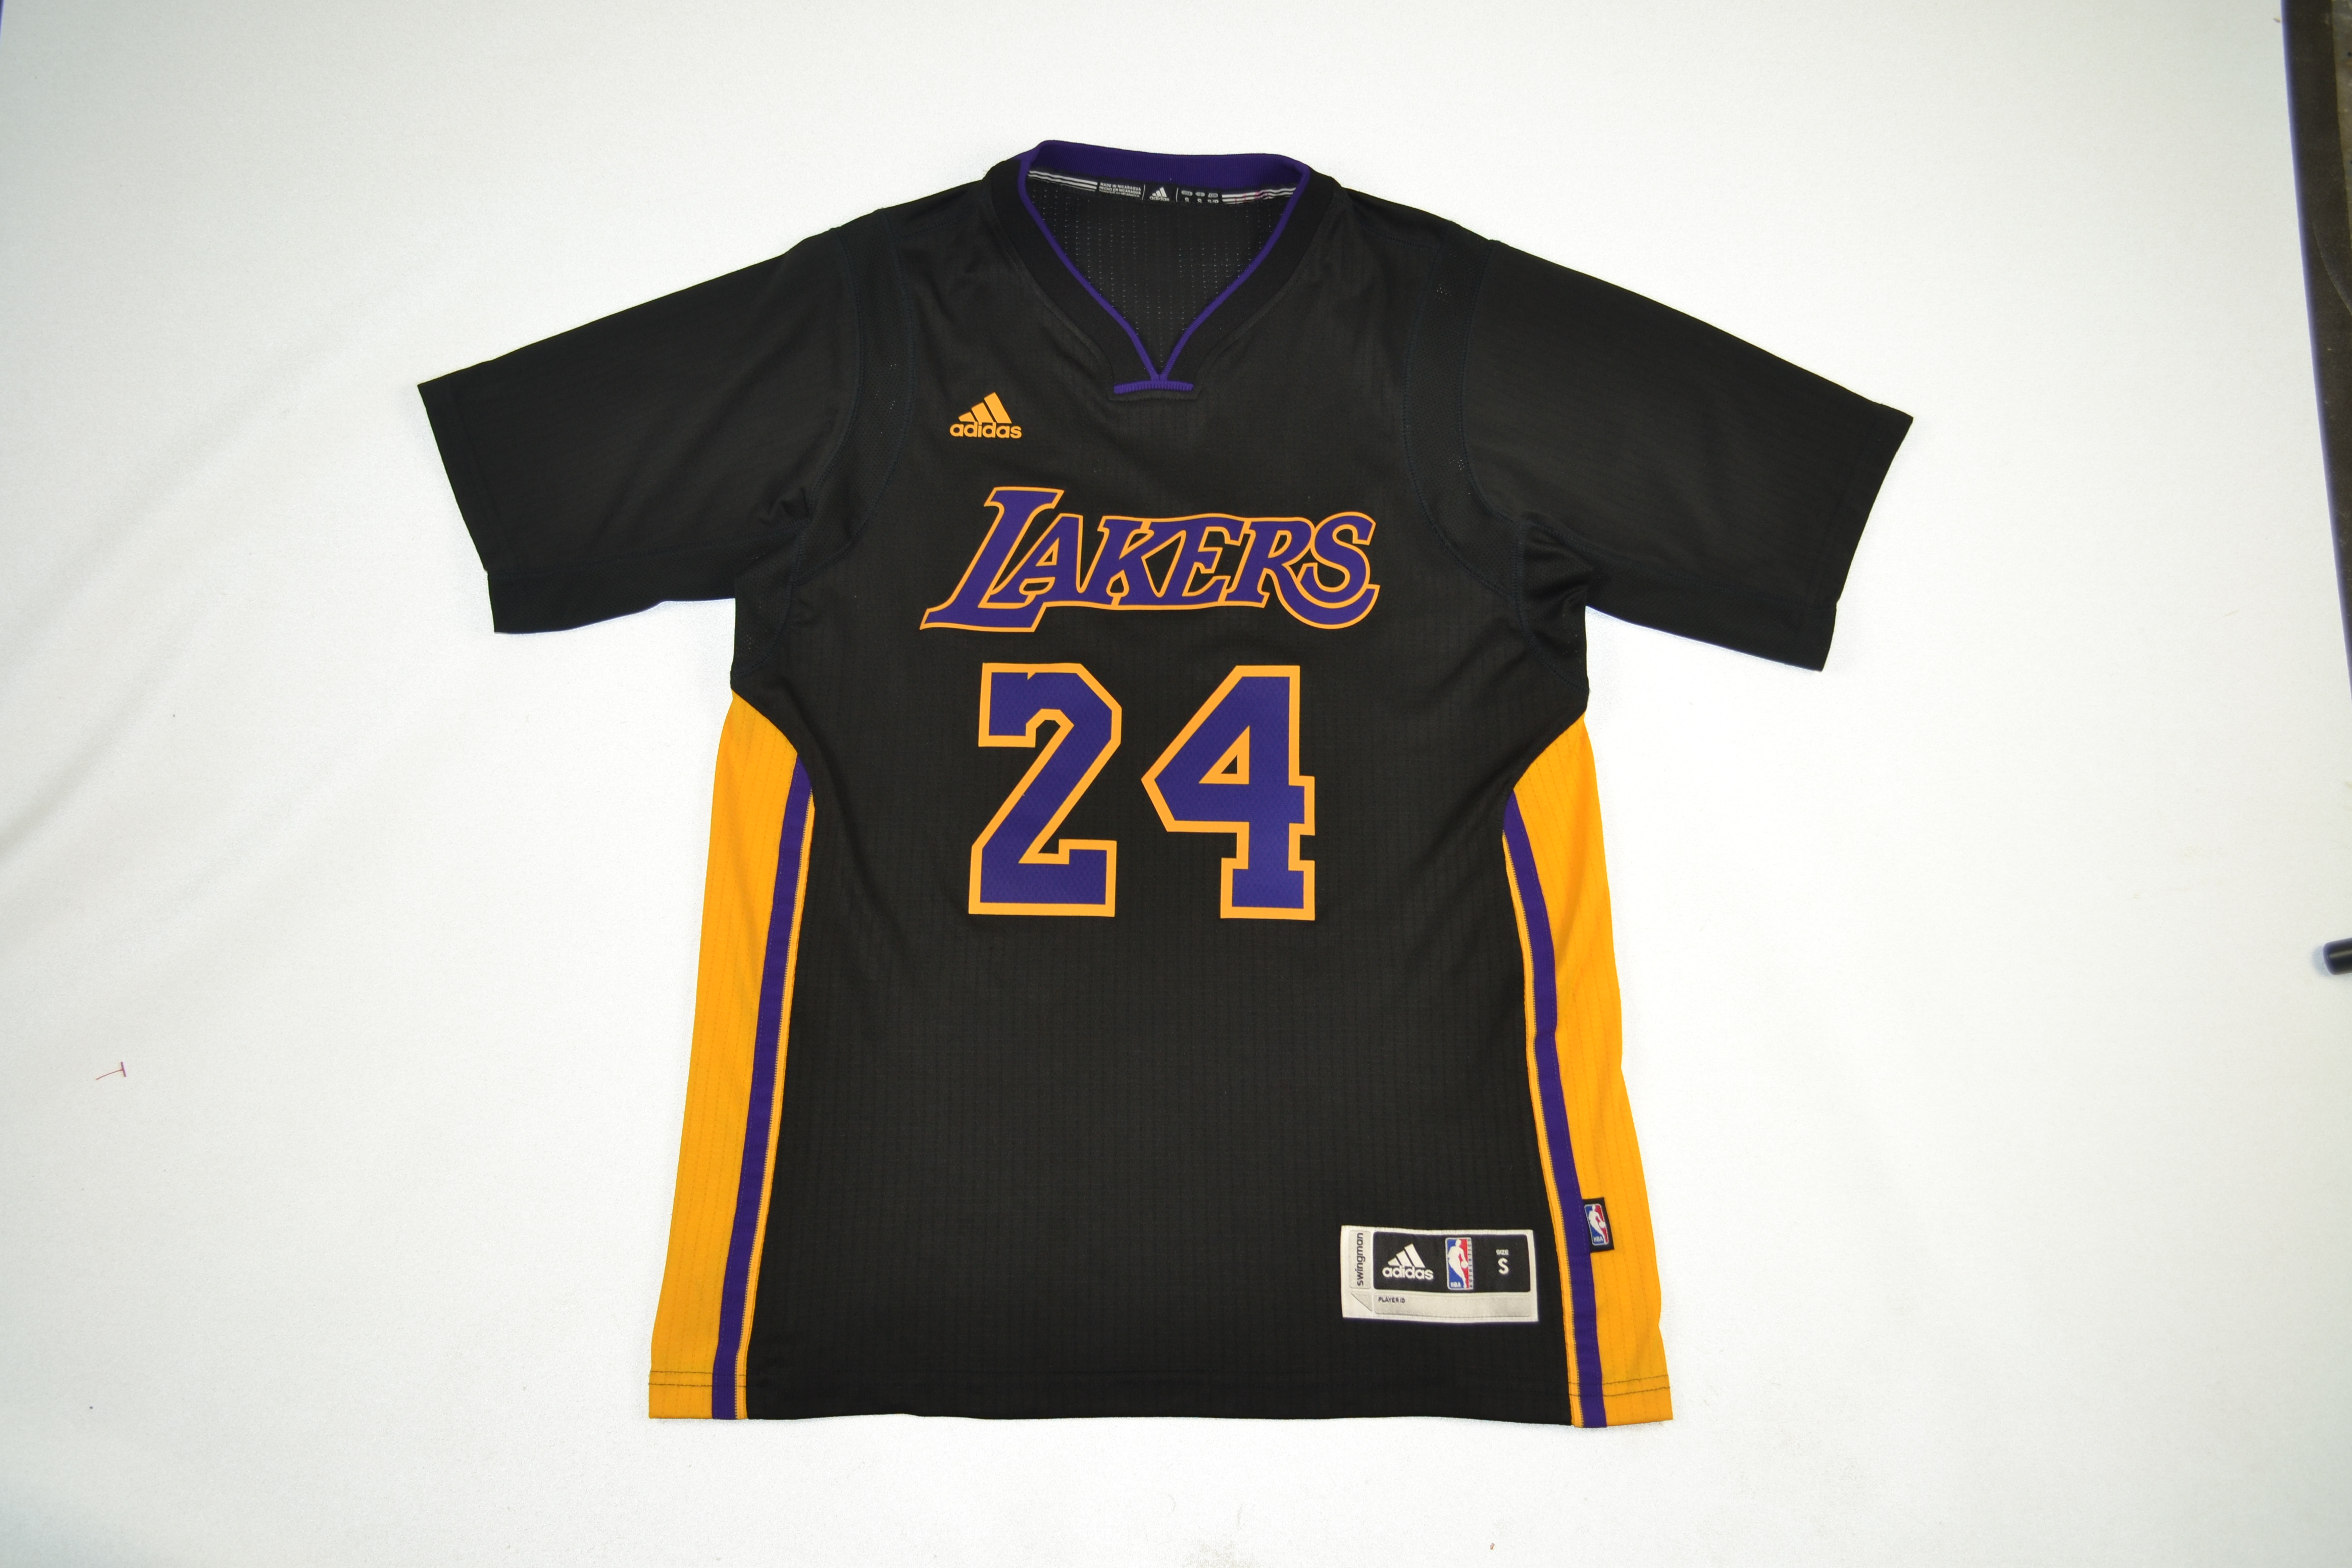 lakers hollywood nights jersey sleeves Off 64% - www ...